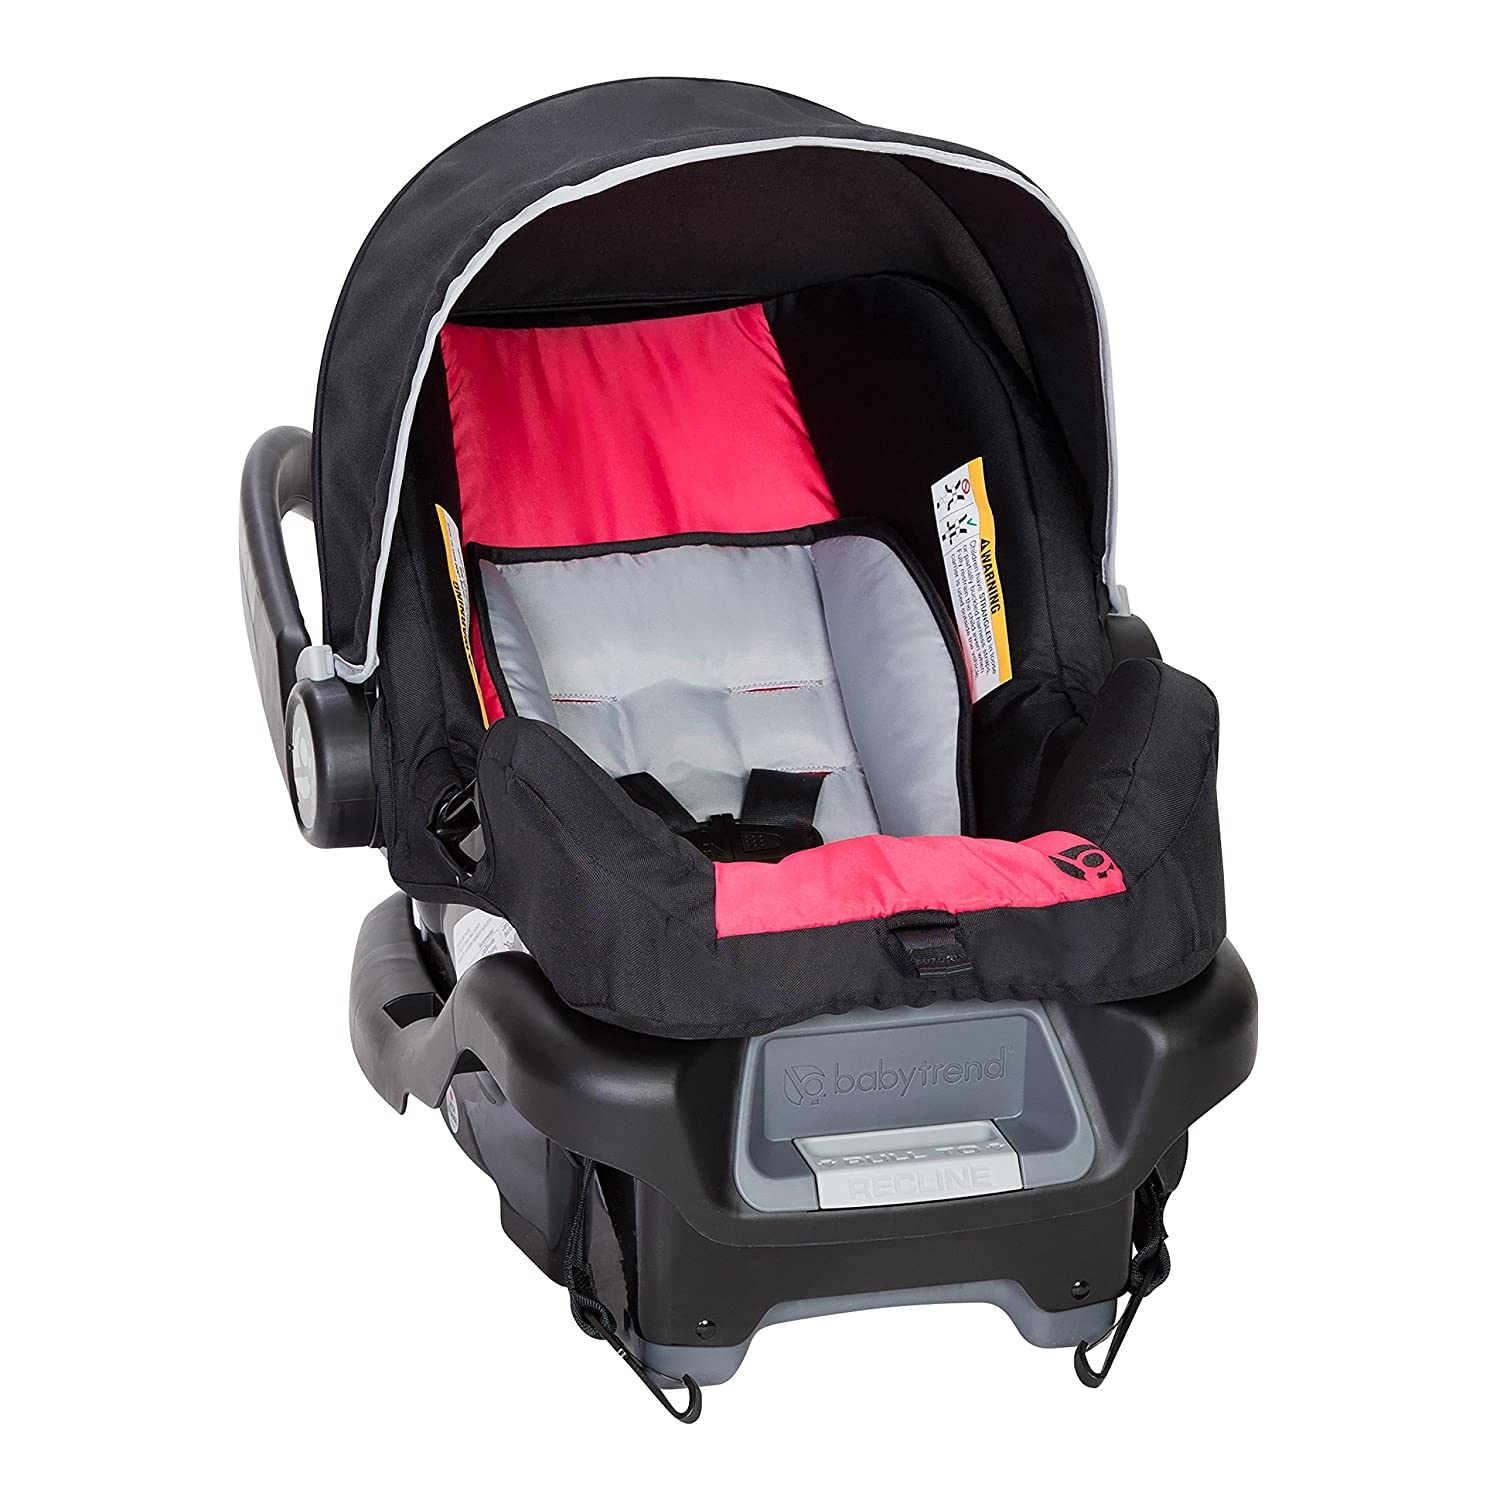 Optic Teal Baby Trend Pathway 35 Jogger Travel System